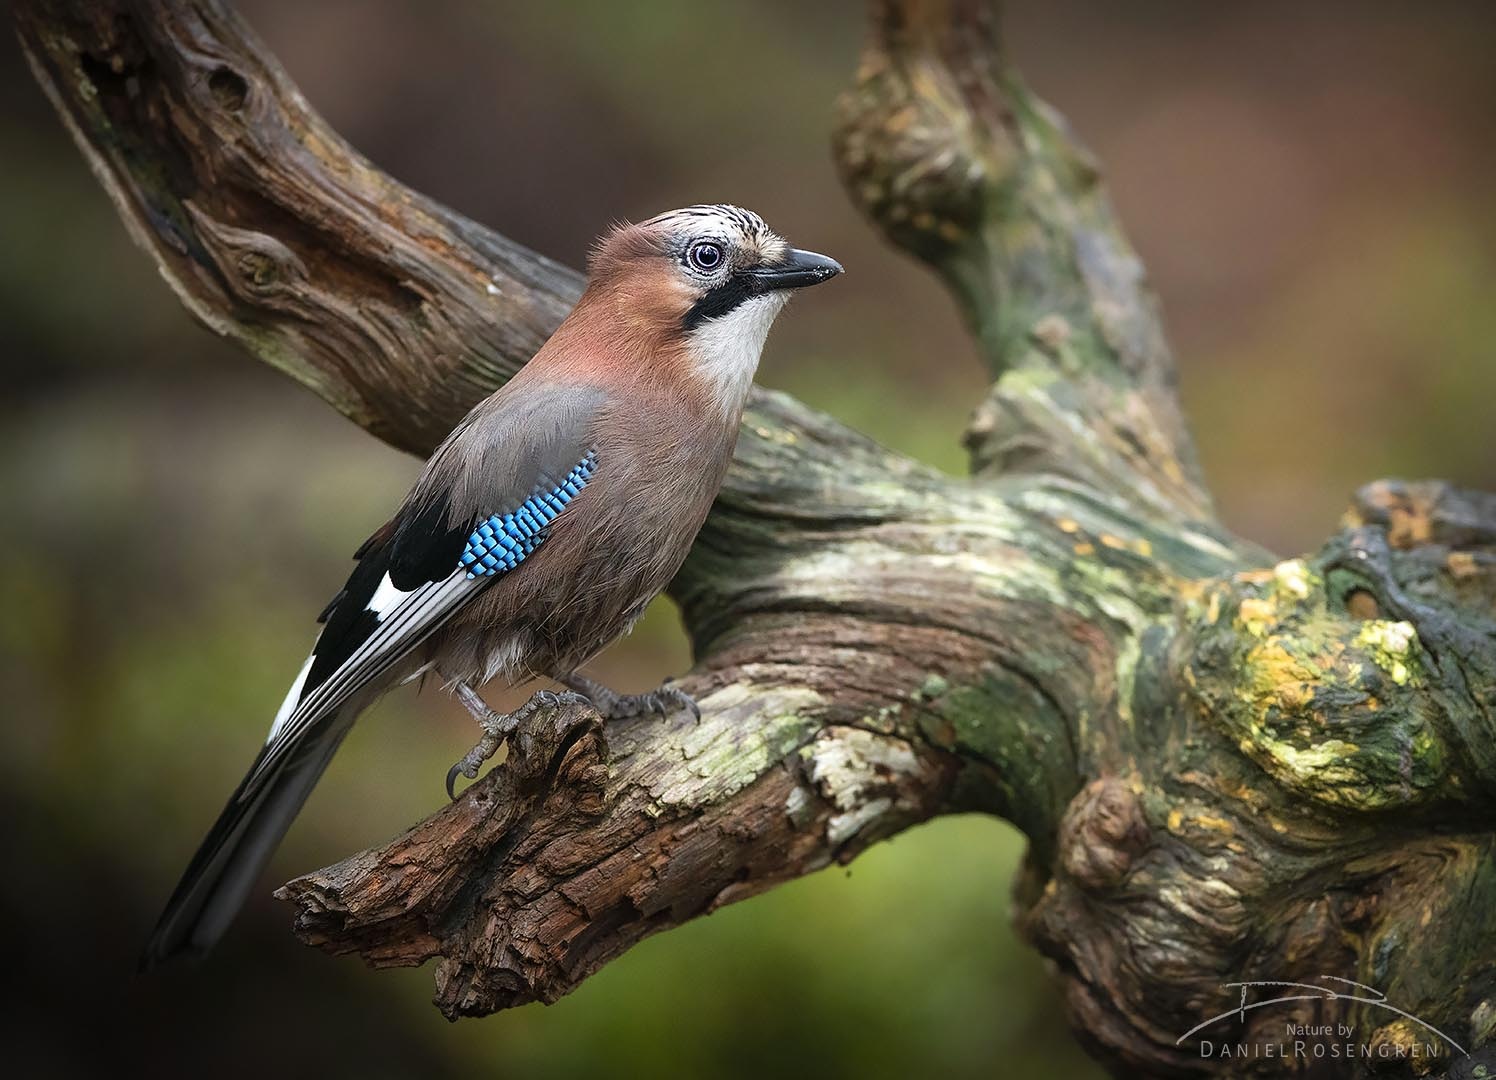 The Eurasian jay is a beautiful bird that is always fun to observe.